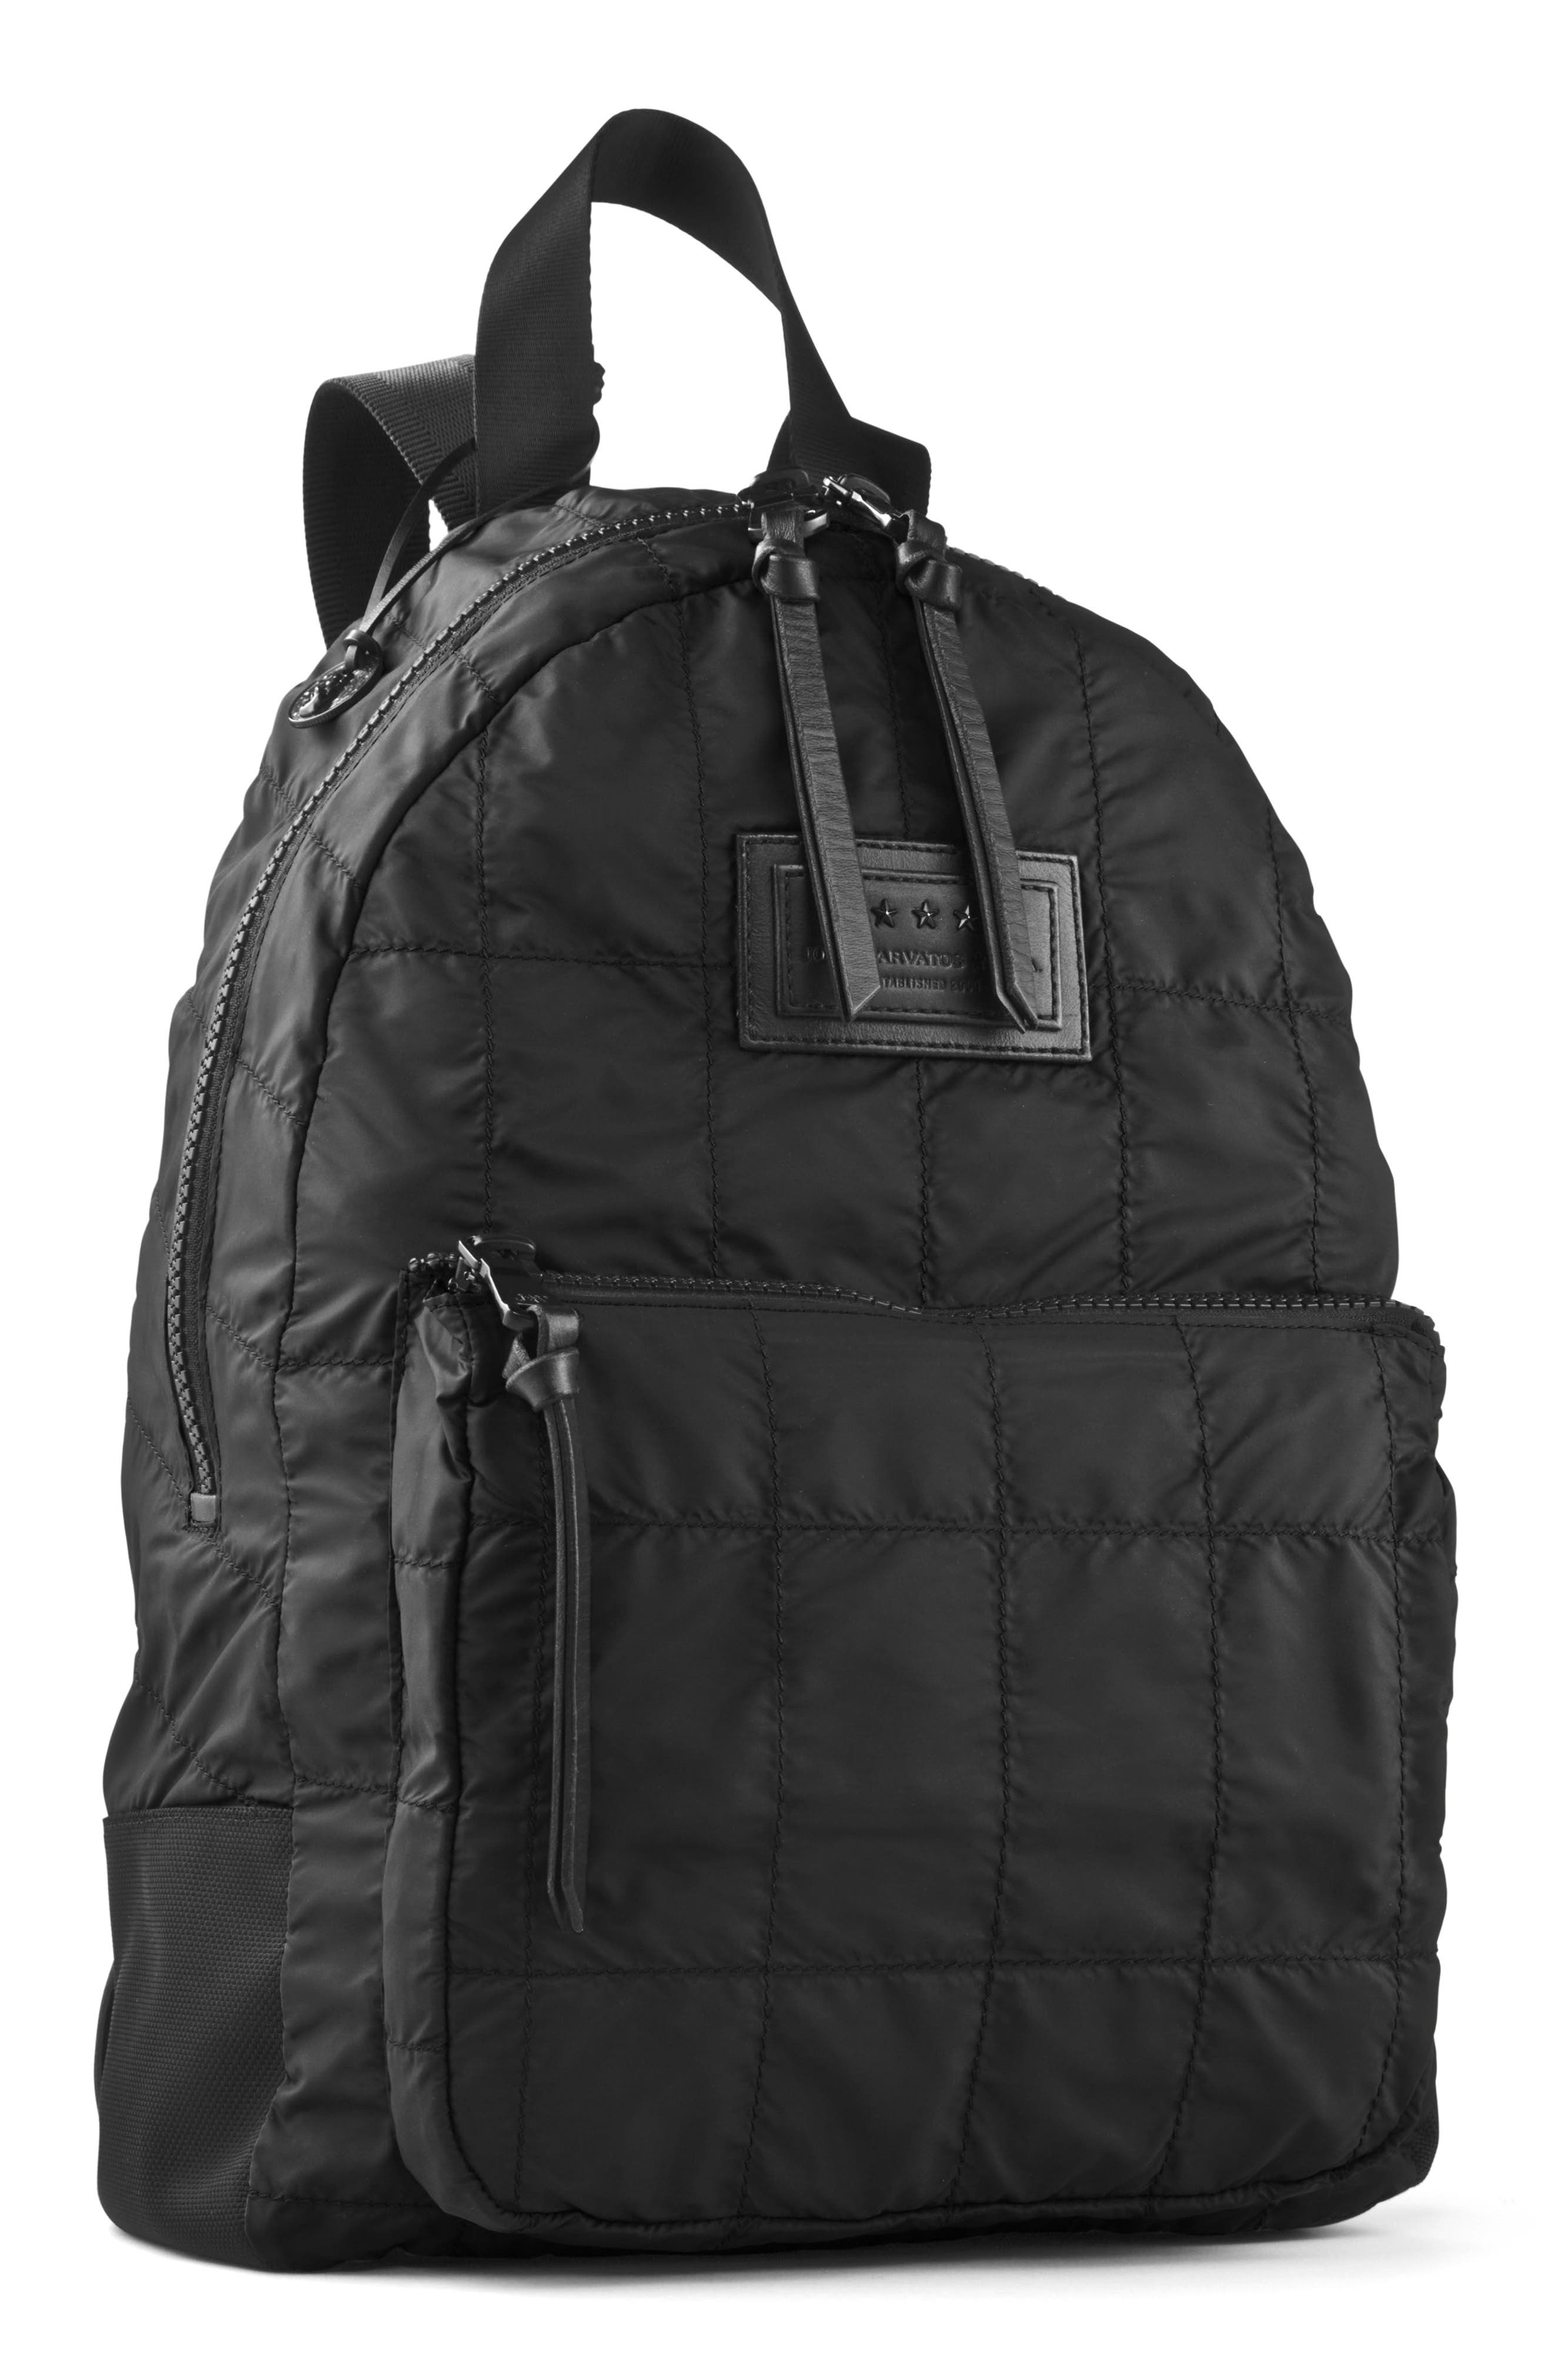 Quilted Nylon Backpack,                             Main thumbnail 1, color,                             001